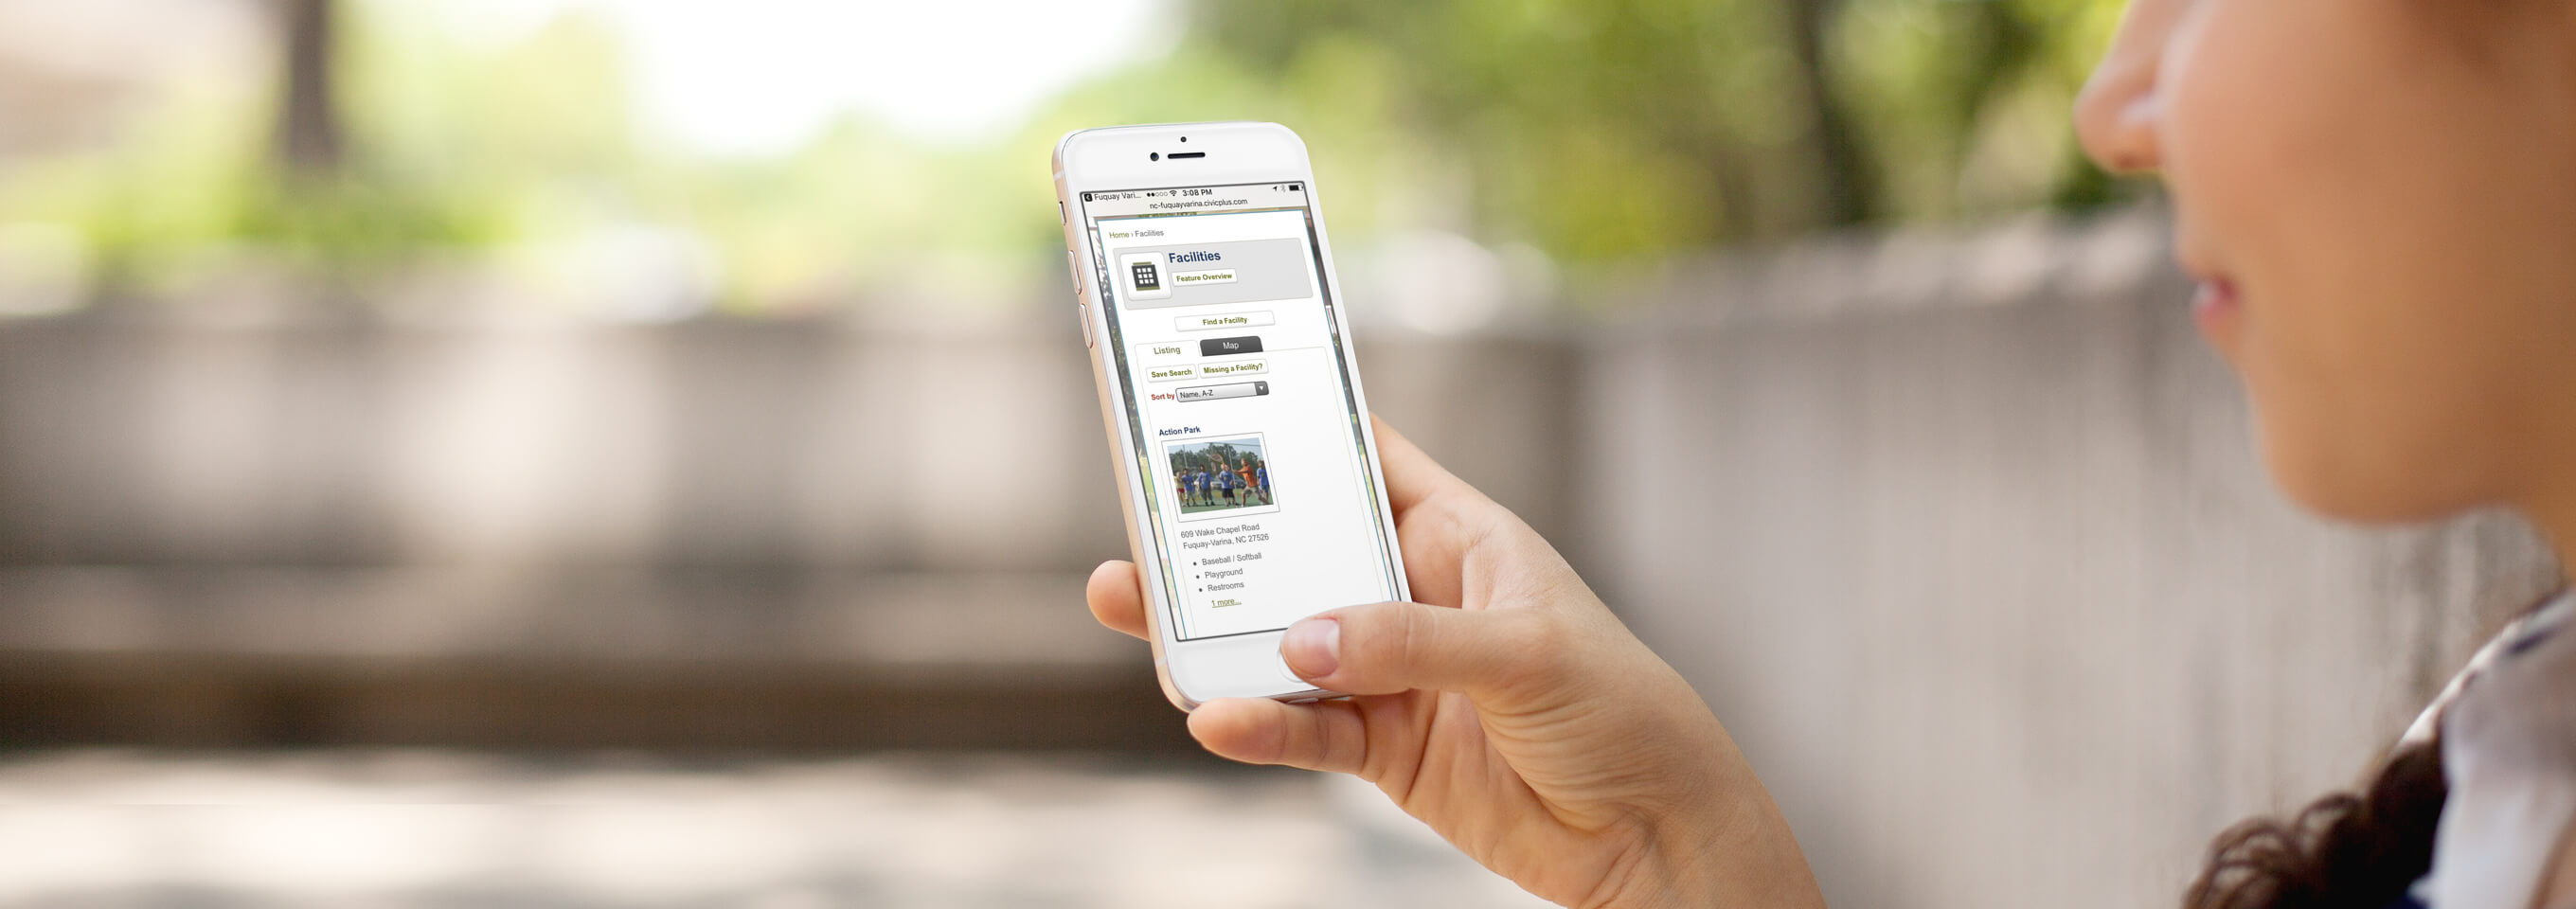 Fuquay-Varina-Provides-Citizens_with_More-with-CivicEngage-Mobile-App-Activities (1).jpg